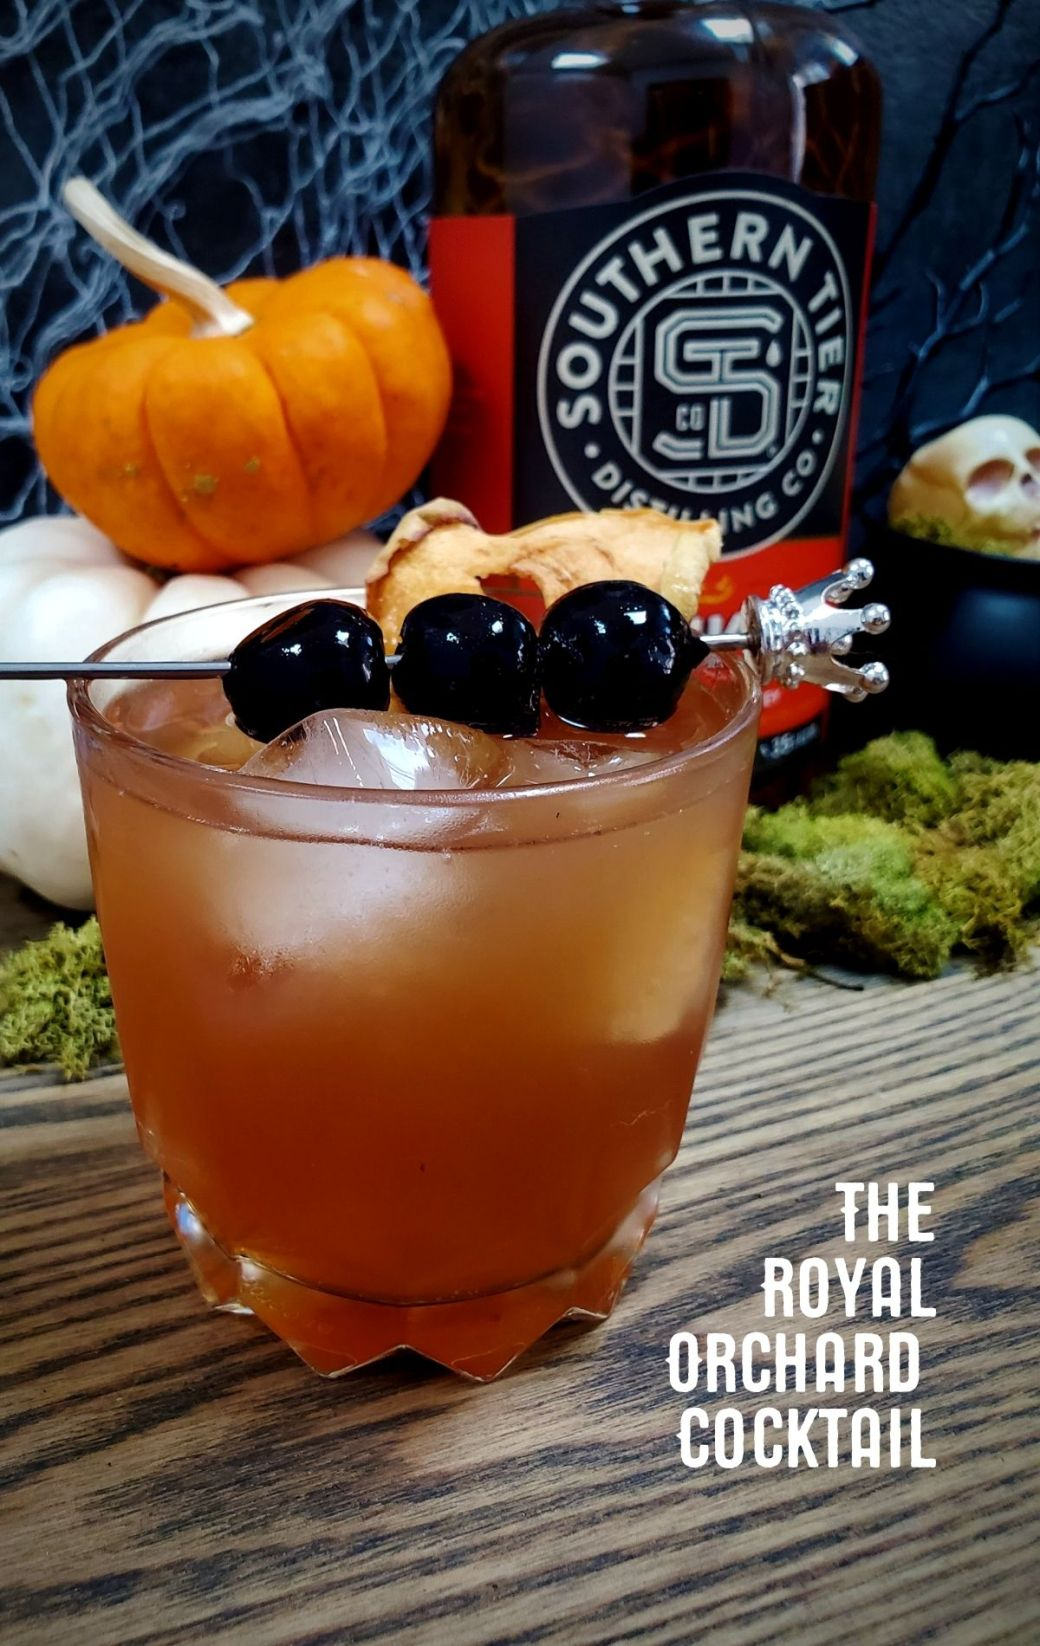 Pumking Whiskey & The Royal Orchard Cocktail | A Spirit Review & Recipe